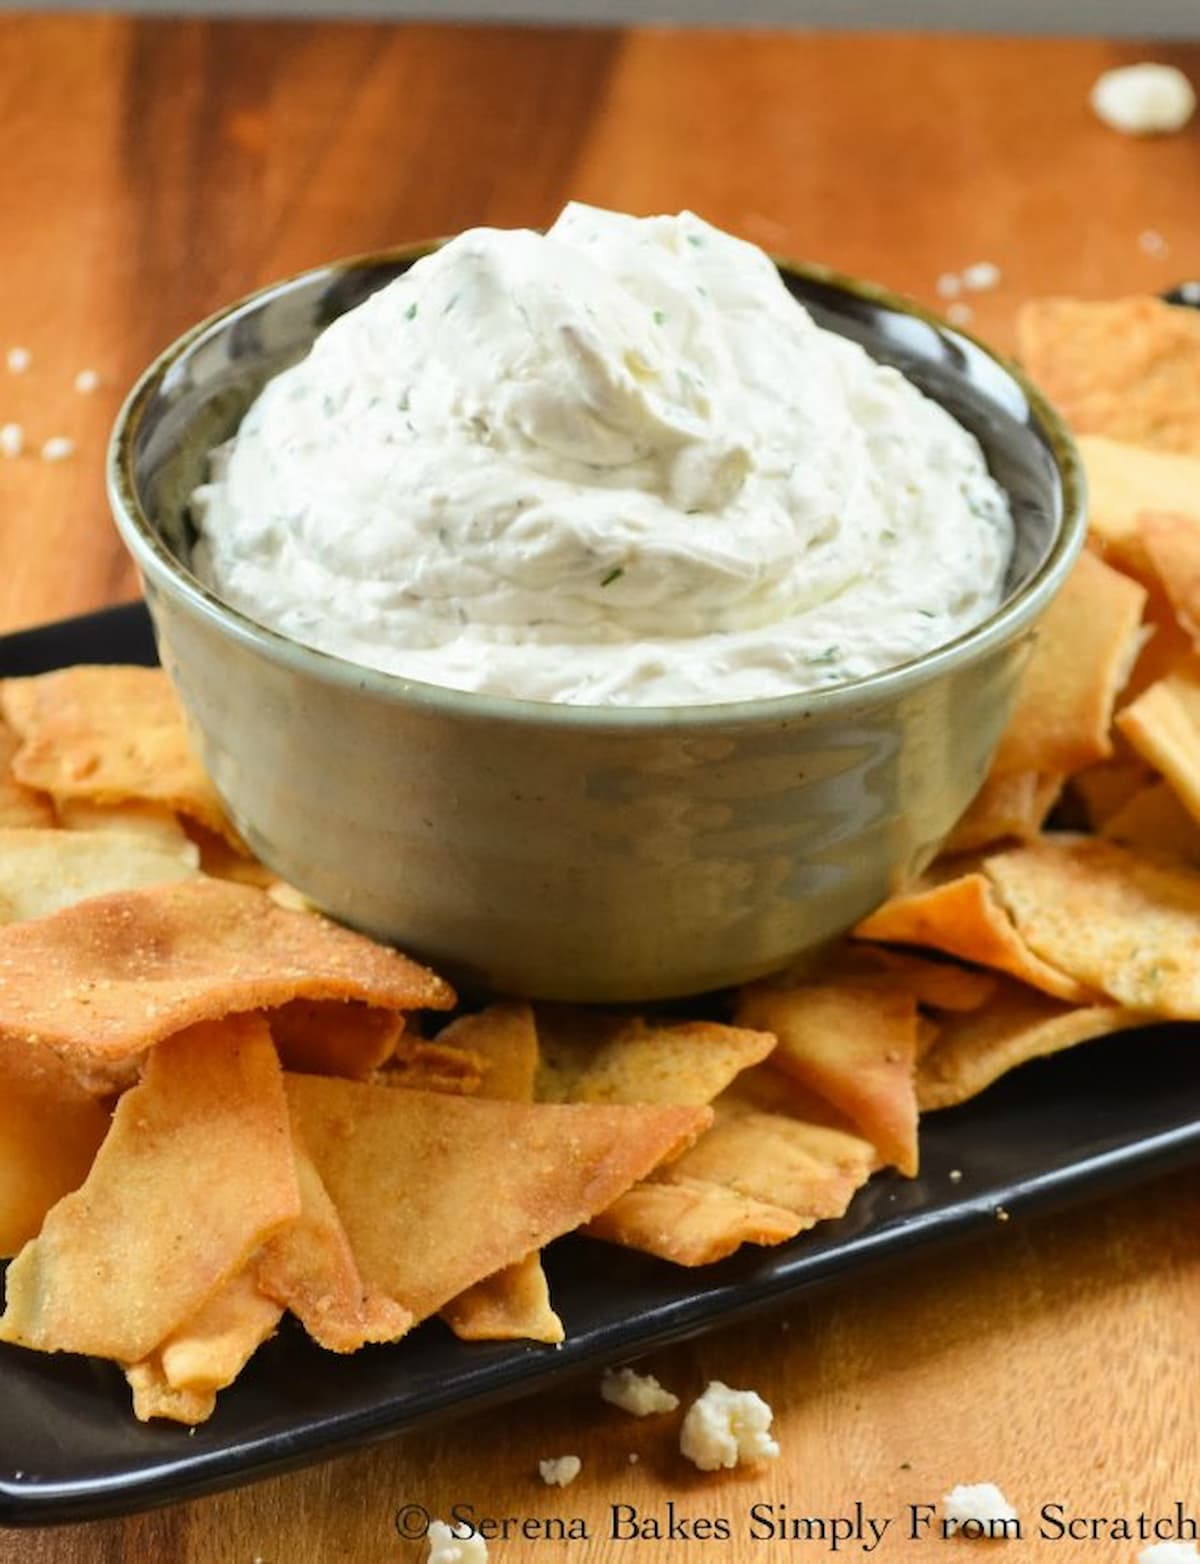 Greek Feta Dip in a small bowl with pita chips spread around the edge.